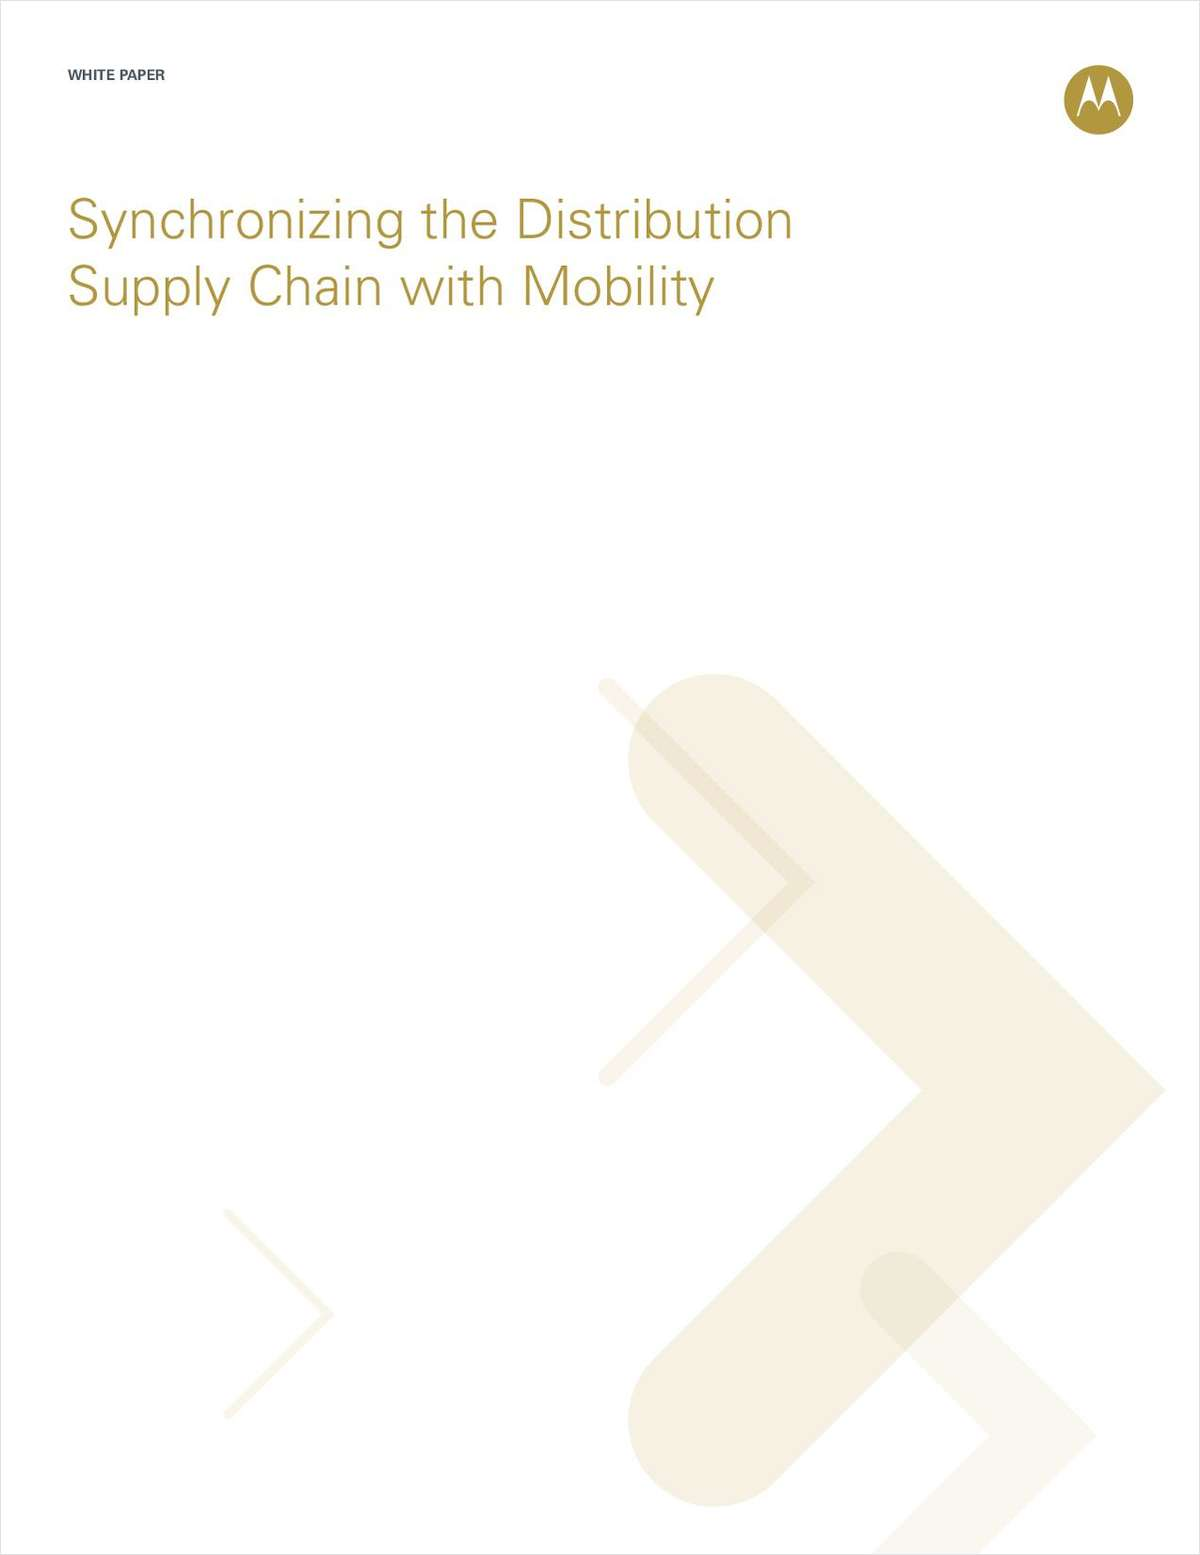 Synchronizing the Distribution Supply Chain with Mobility